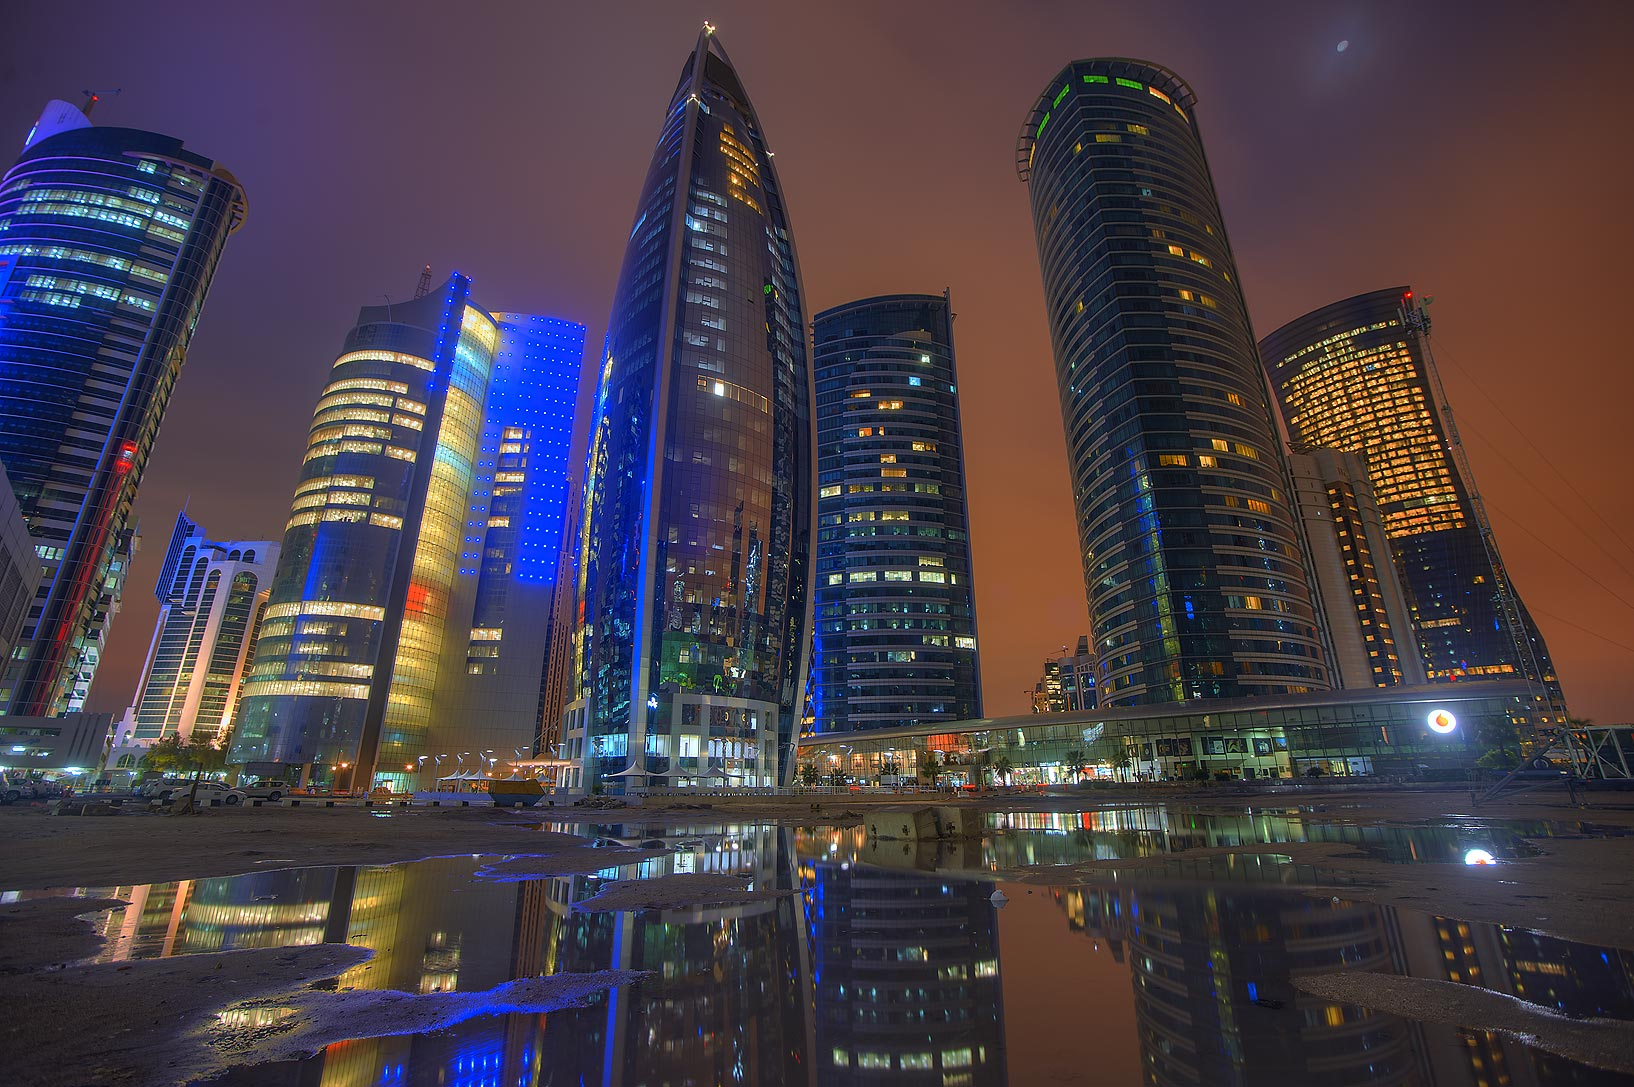 Woqod and Al Fardan towers in West Bay after a rain. Doha, Qatar